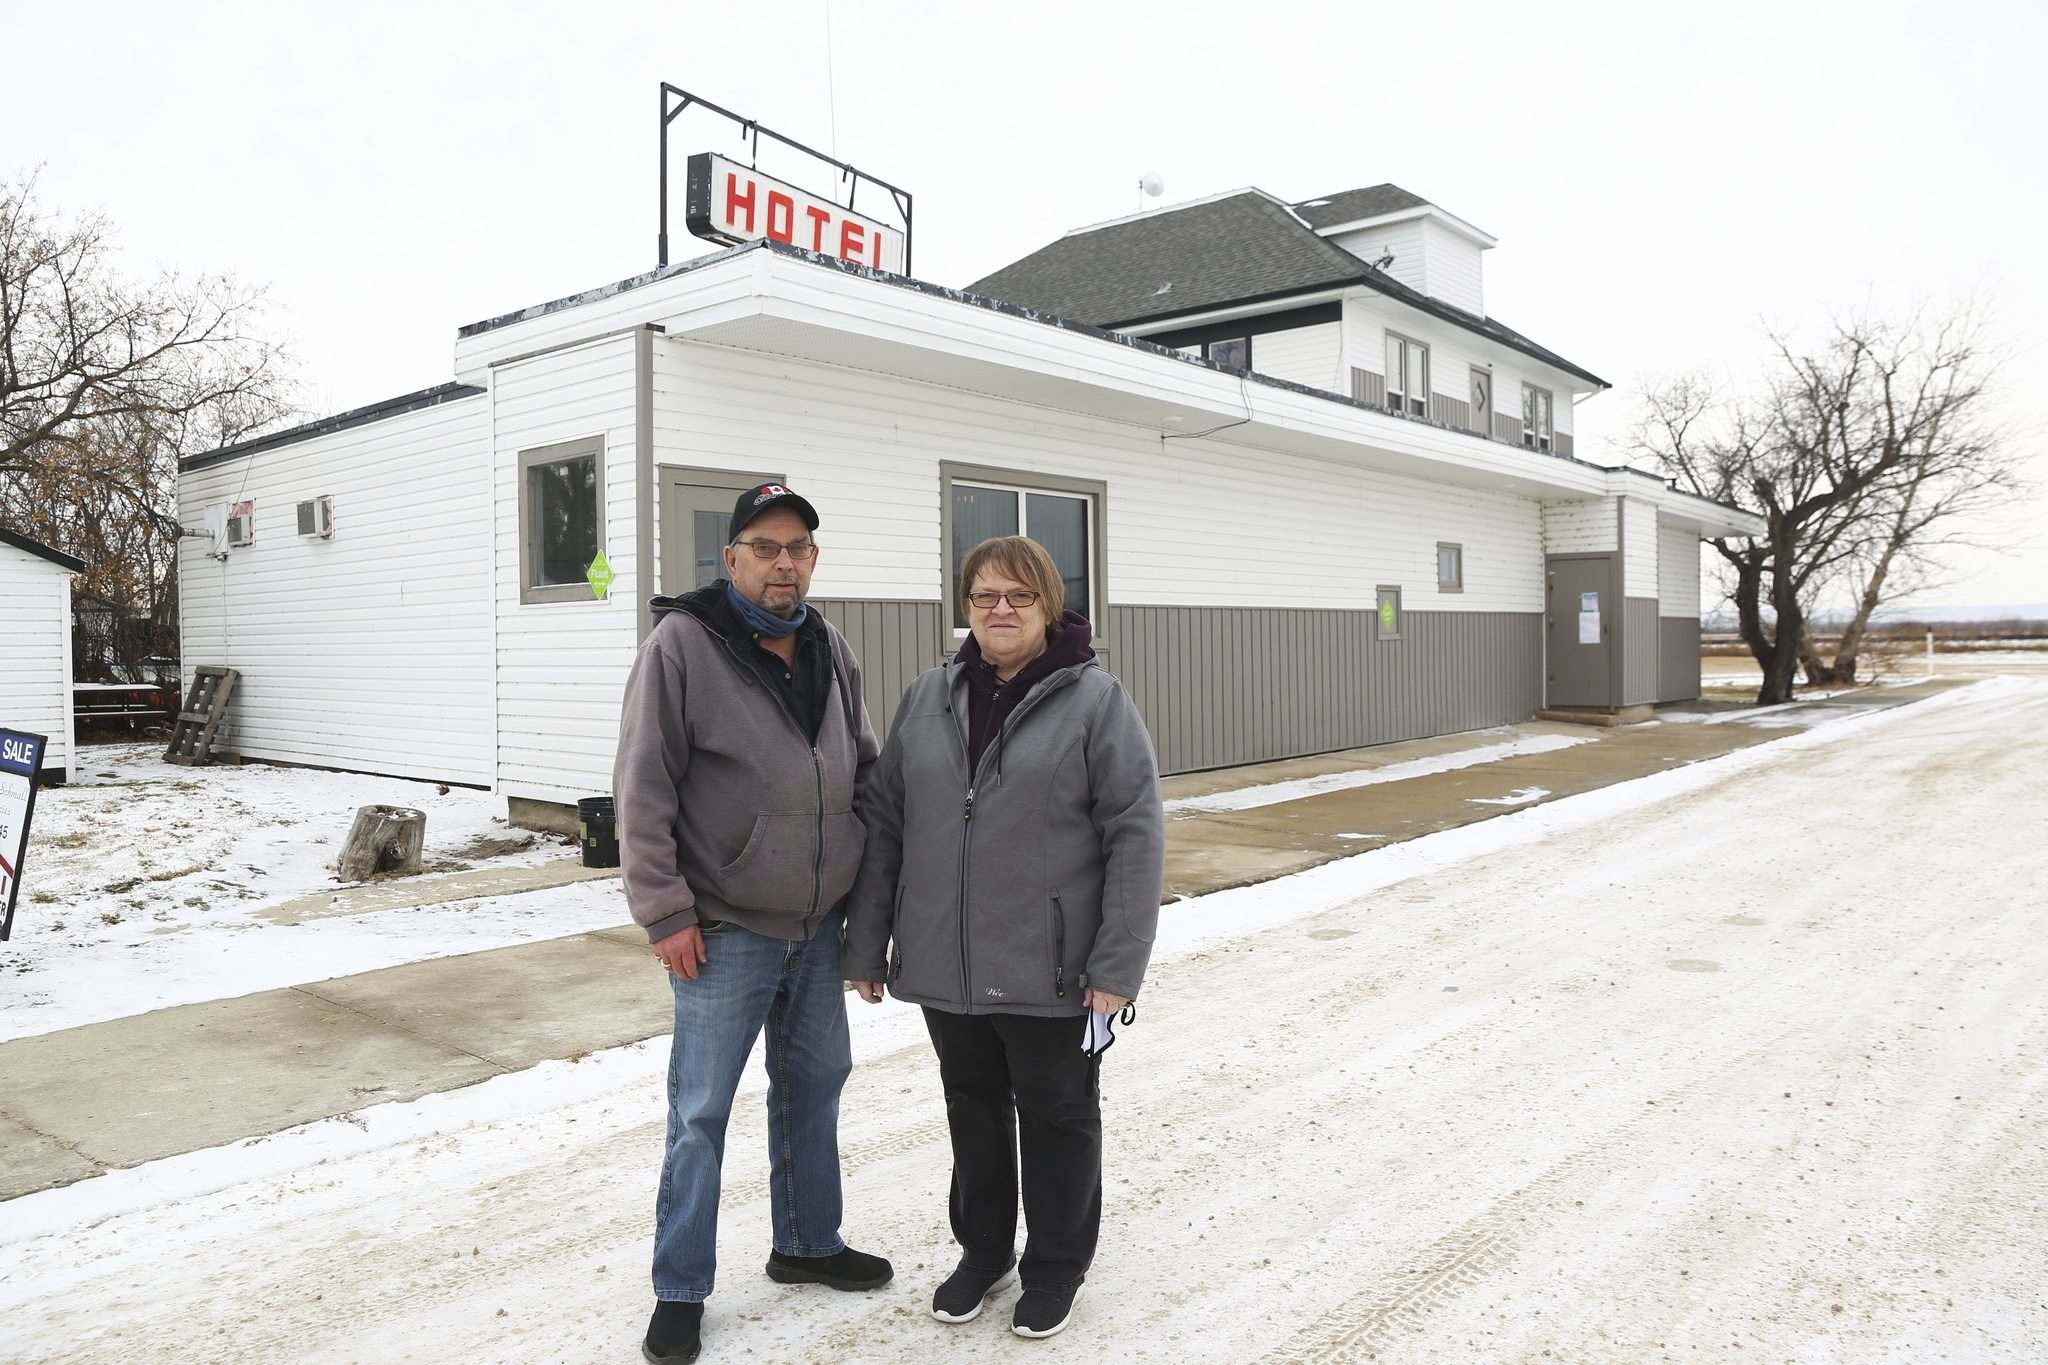 Bob and Bev Fuglsang just celebrated their 30th year as owners of the Corona Hotel in Glenella.